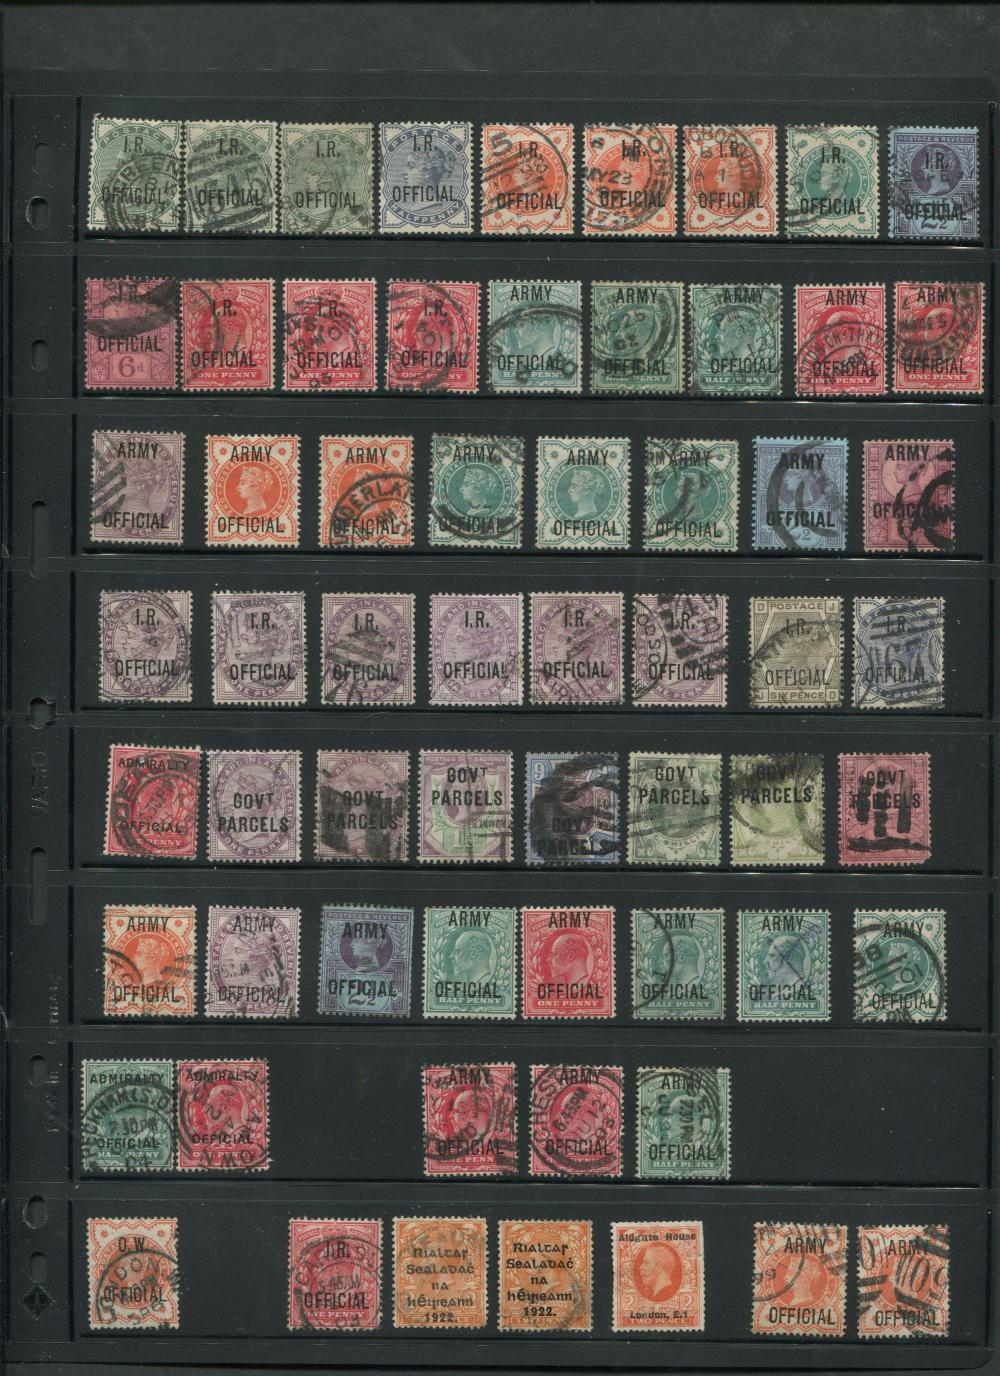 Great Britain Official and Postage Due Stamp Collection